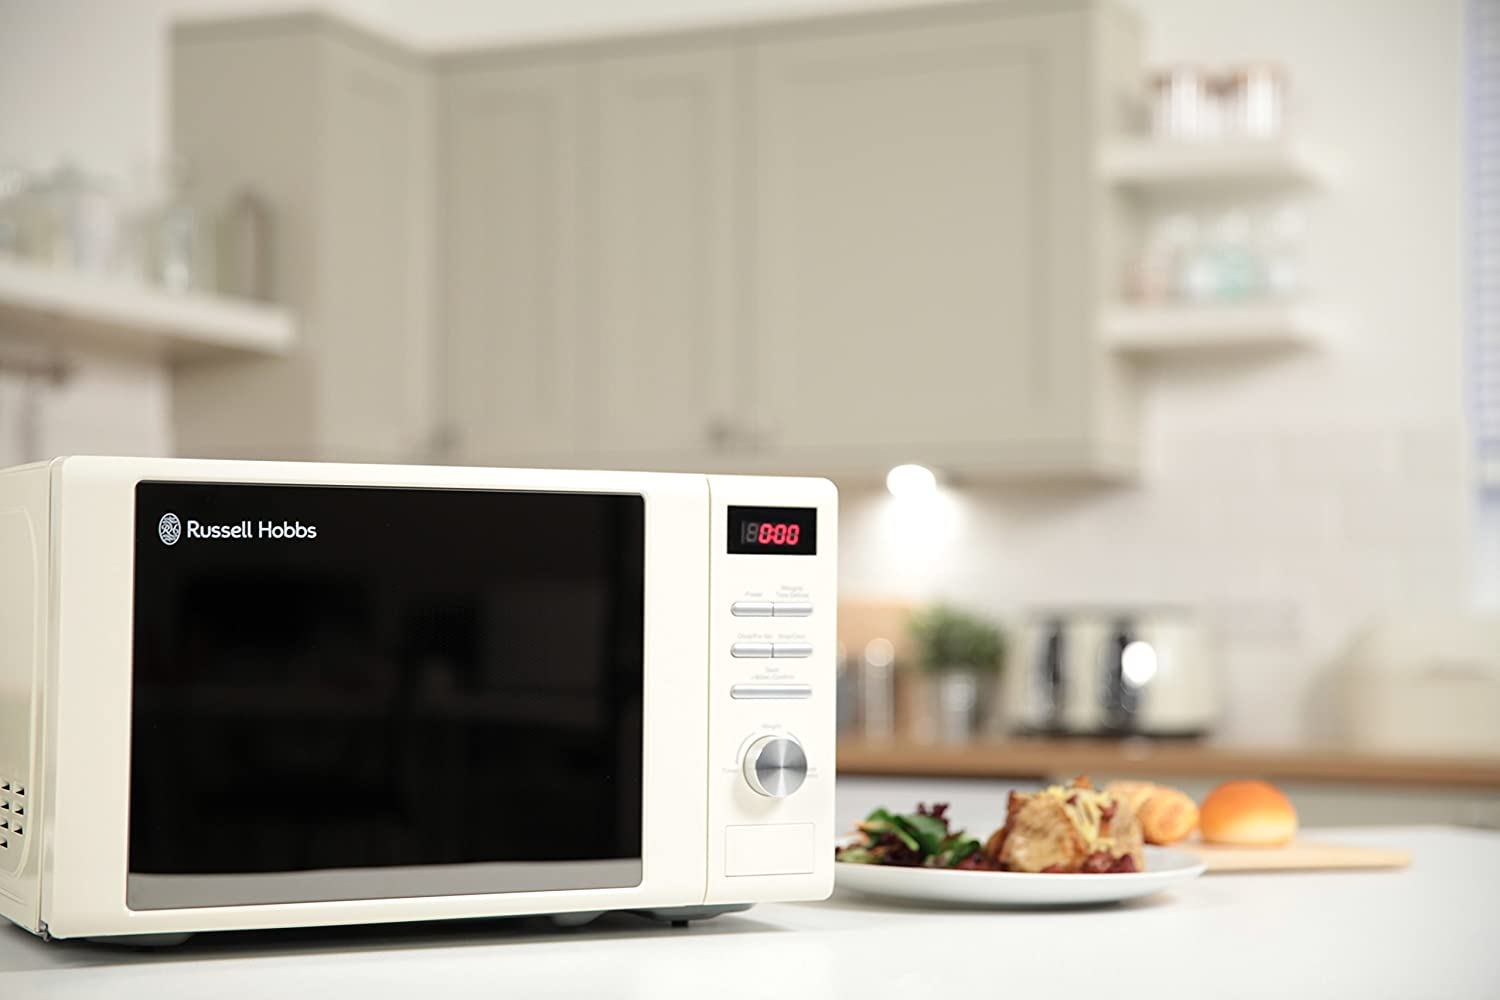 Aldi home sale catalogue special buys stirling 34l microwave oven - Russell Hobbs Rhm2064c Heritage Digital Microwave 20 Litre Cream Amazon Co Uk Kitchen Home